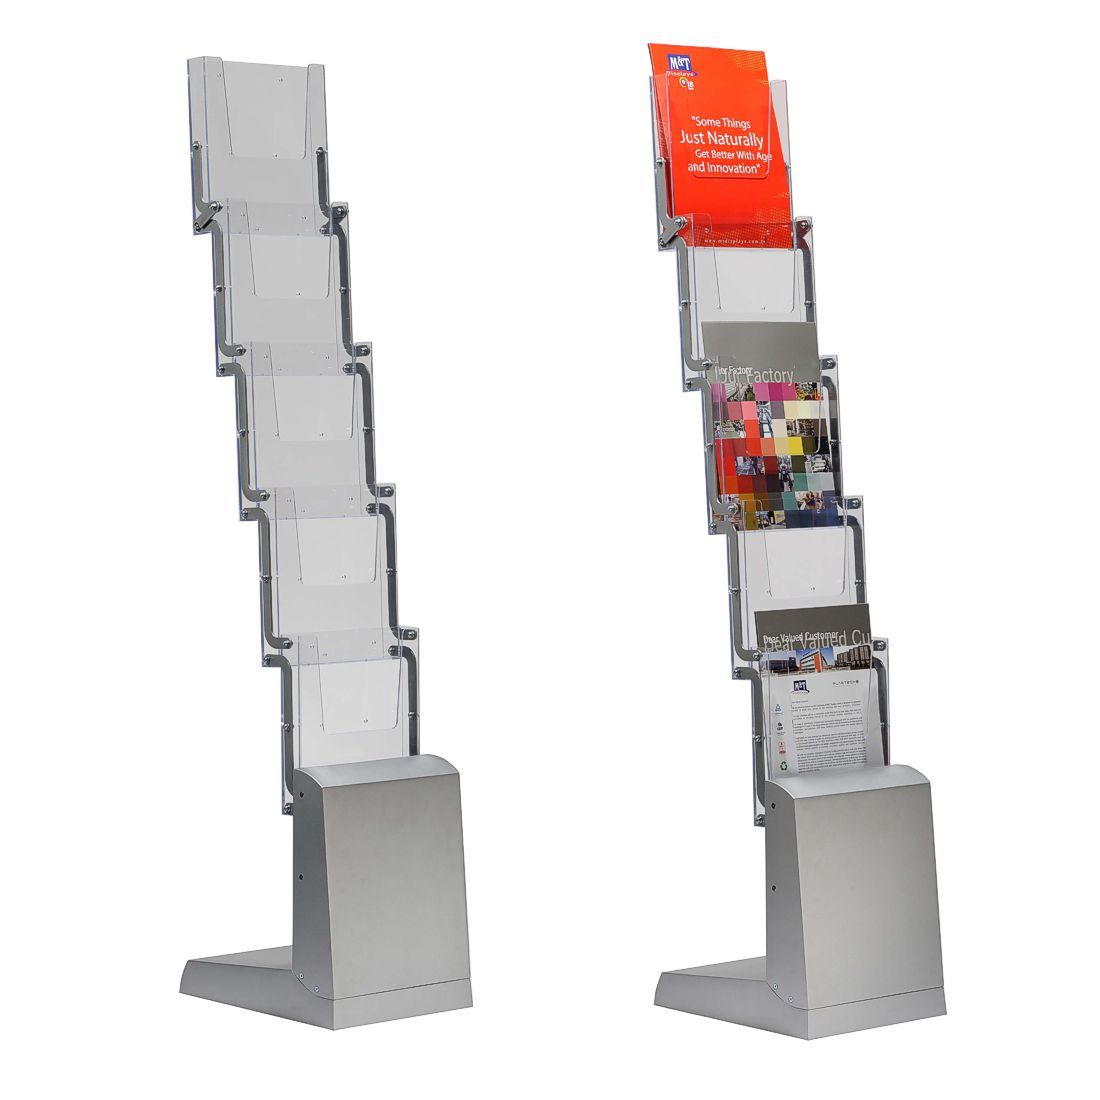 A4 Leaflet Display Stand A4 Pop Up Literature Stands For